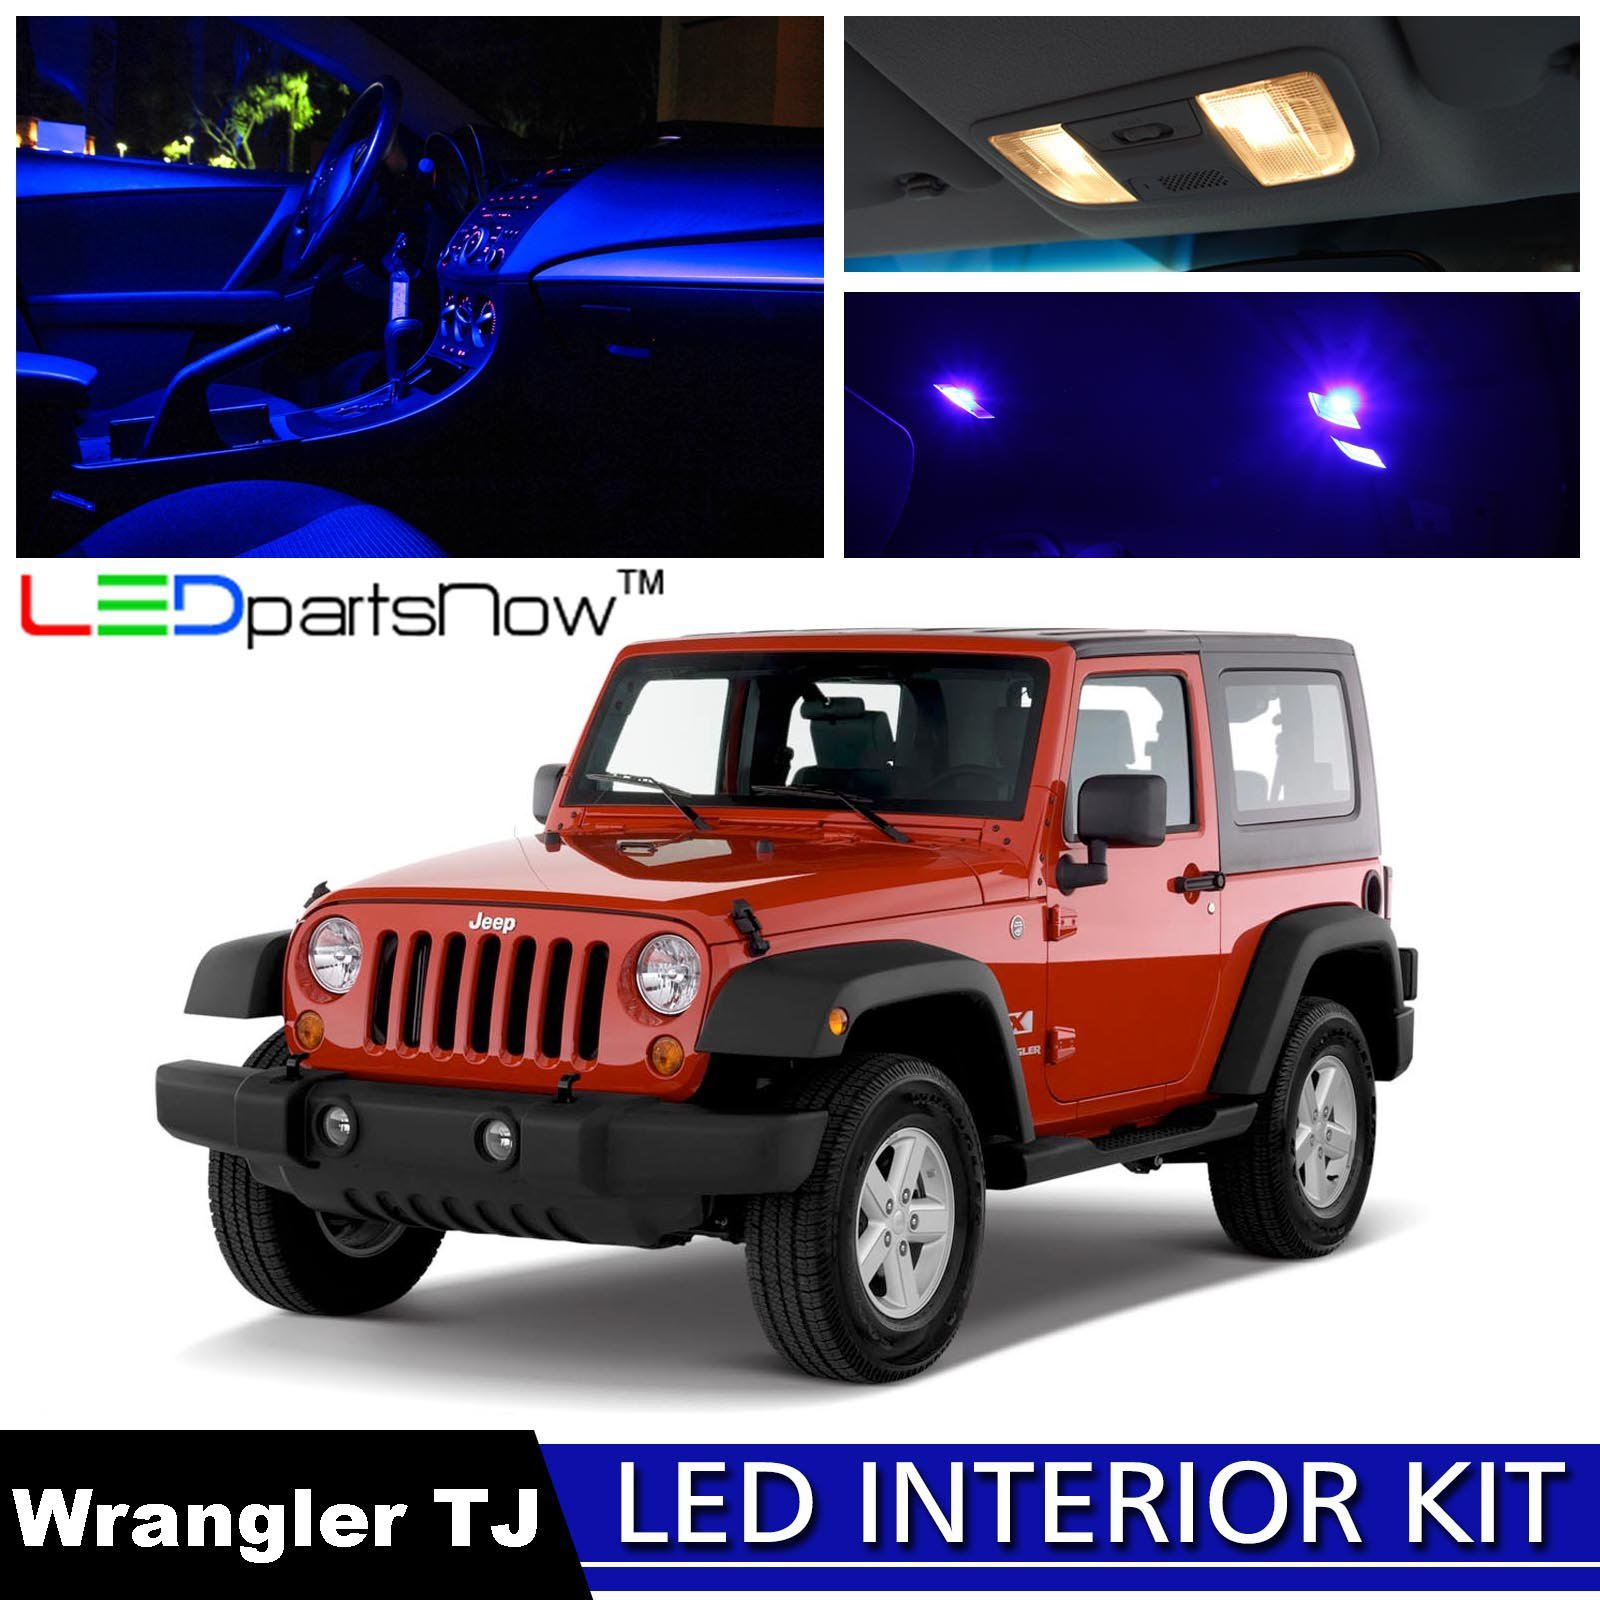 LEDpartsNow 2000-2006 Jeep Wrangler TJ LED Interior Lights Accessories Replacement Package Kit (8 Pieces), BLUE